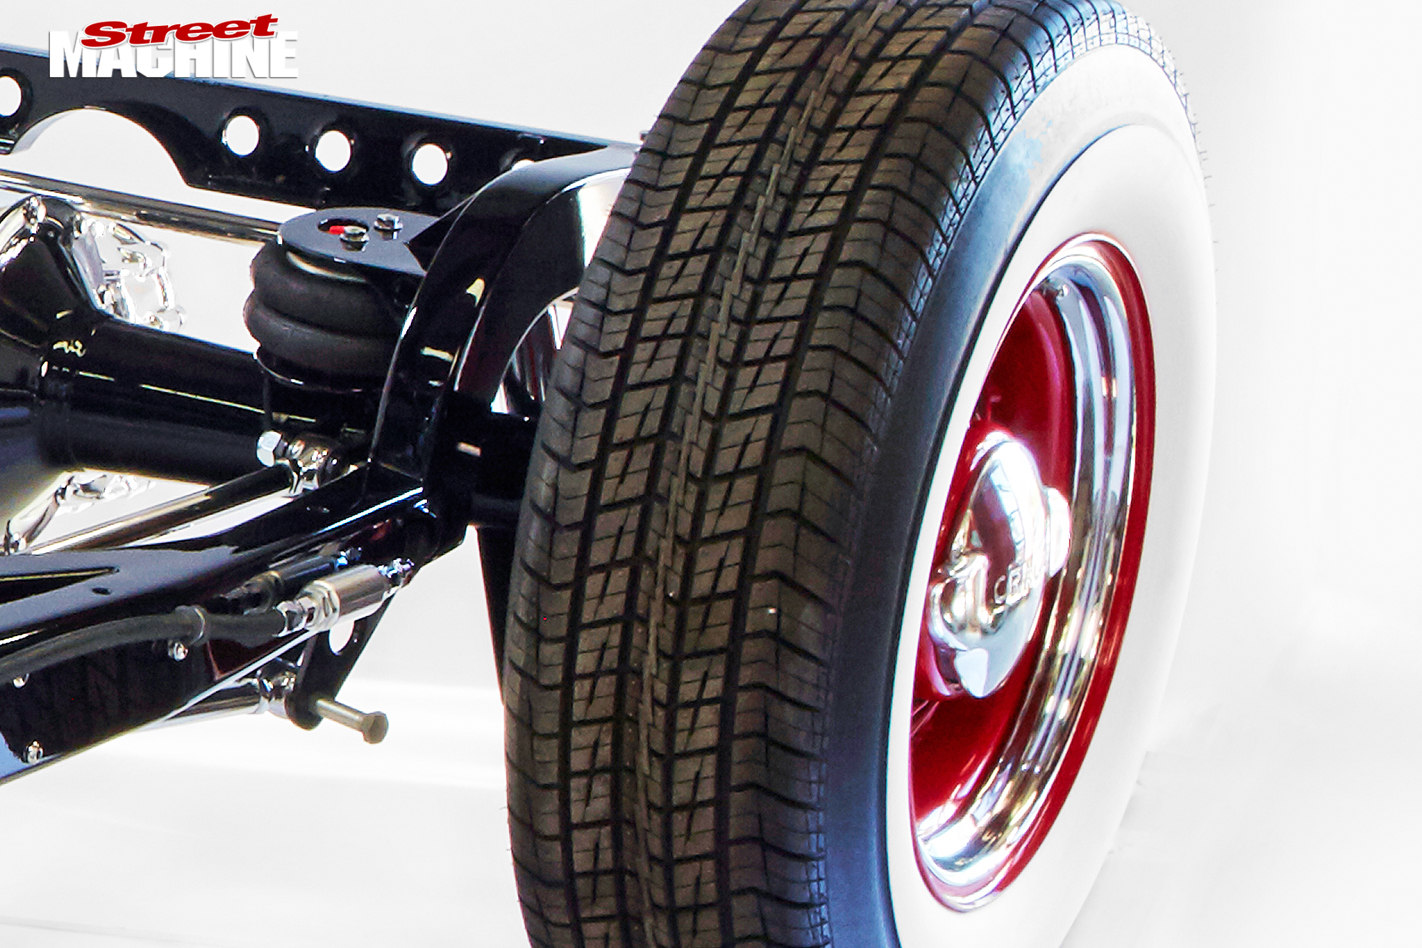 Ford -model -a -chassis -wheel